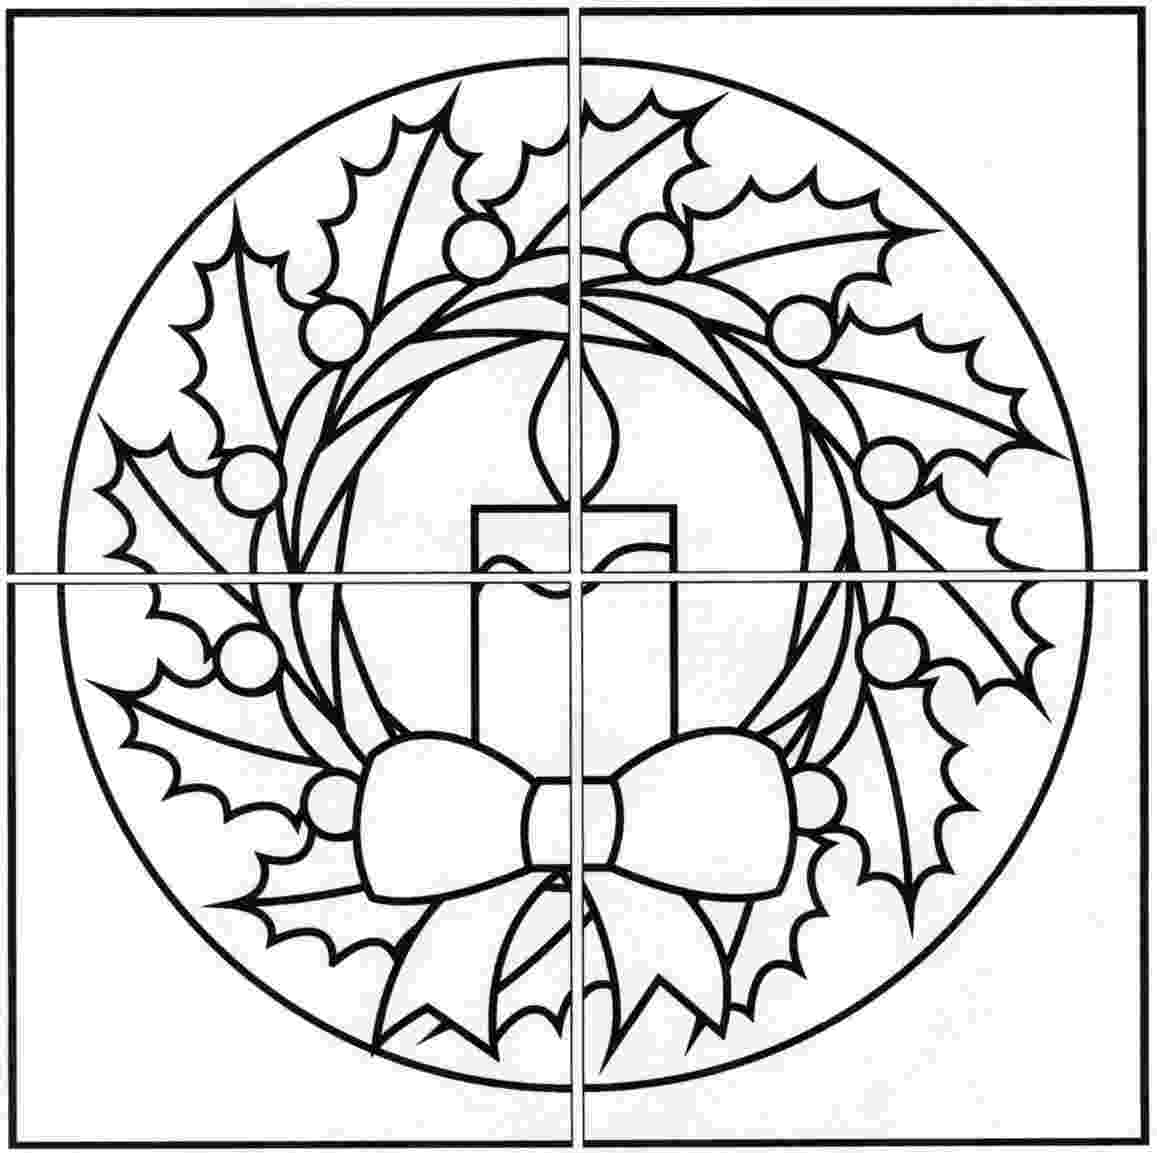 christmas wreath coloring page coloring pages wreaths coloring pages free and printable christmas wreath page coloring